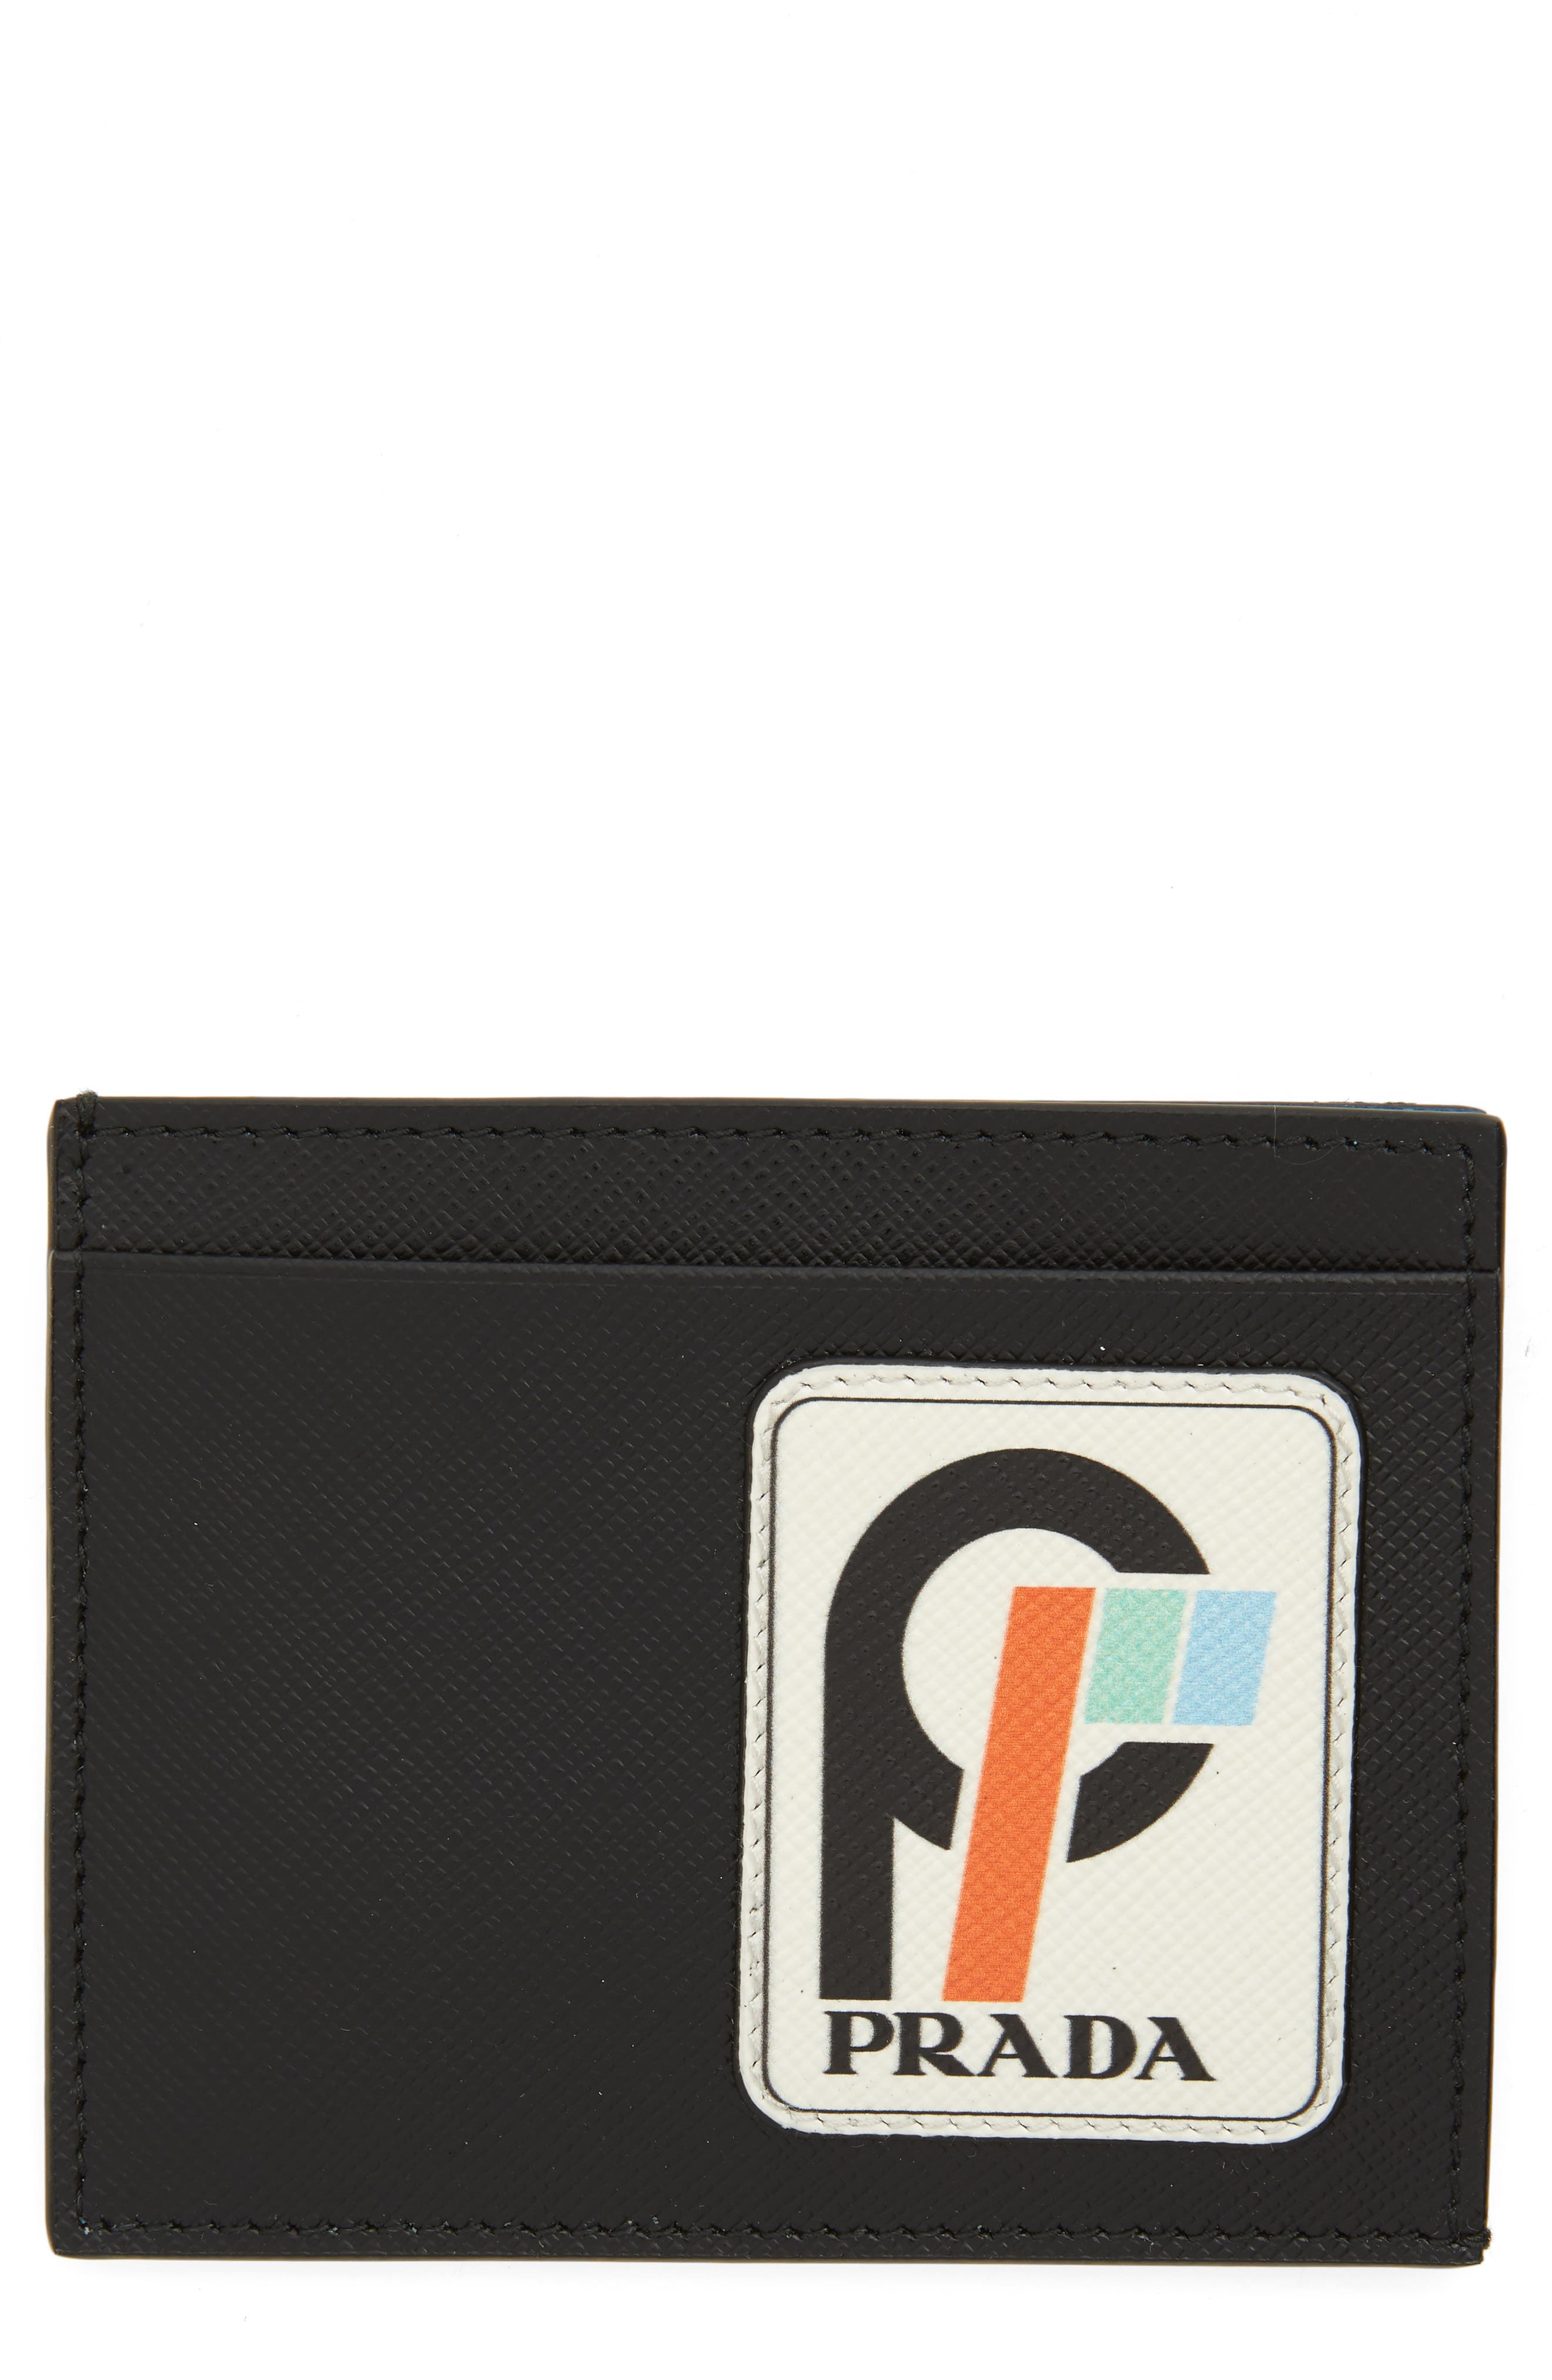 PRADA,                             Saffiano Leather Patch Card Case,                             Main thumbnail 1, color,                             001